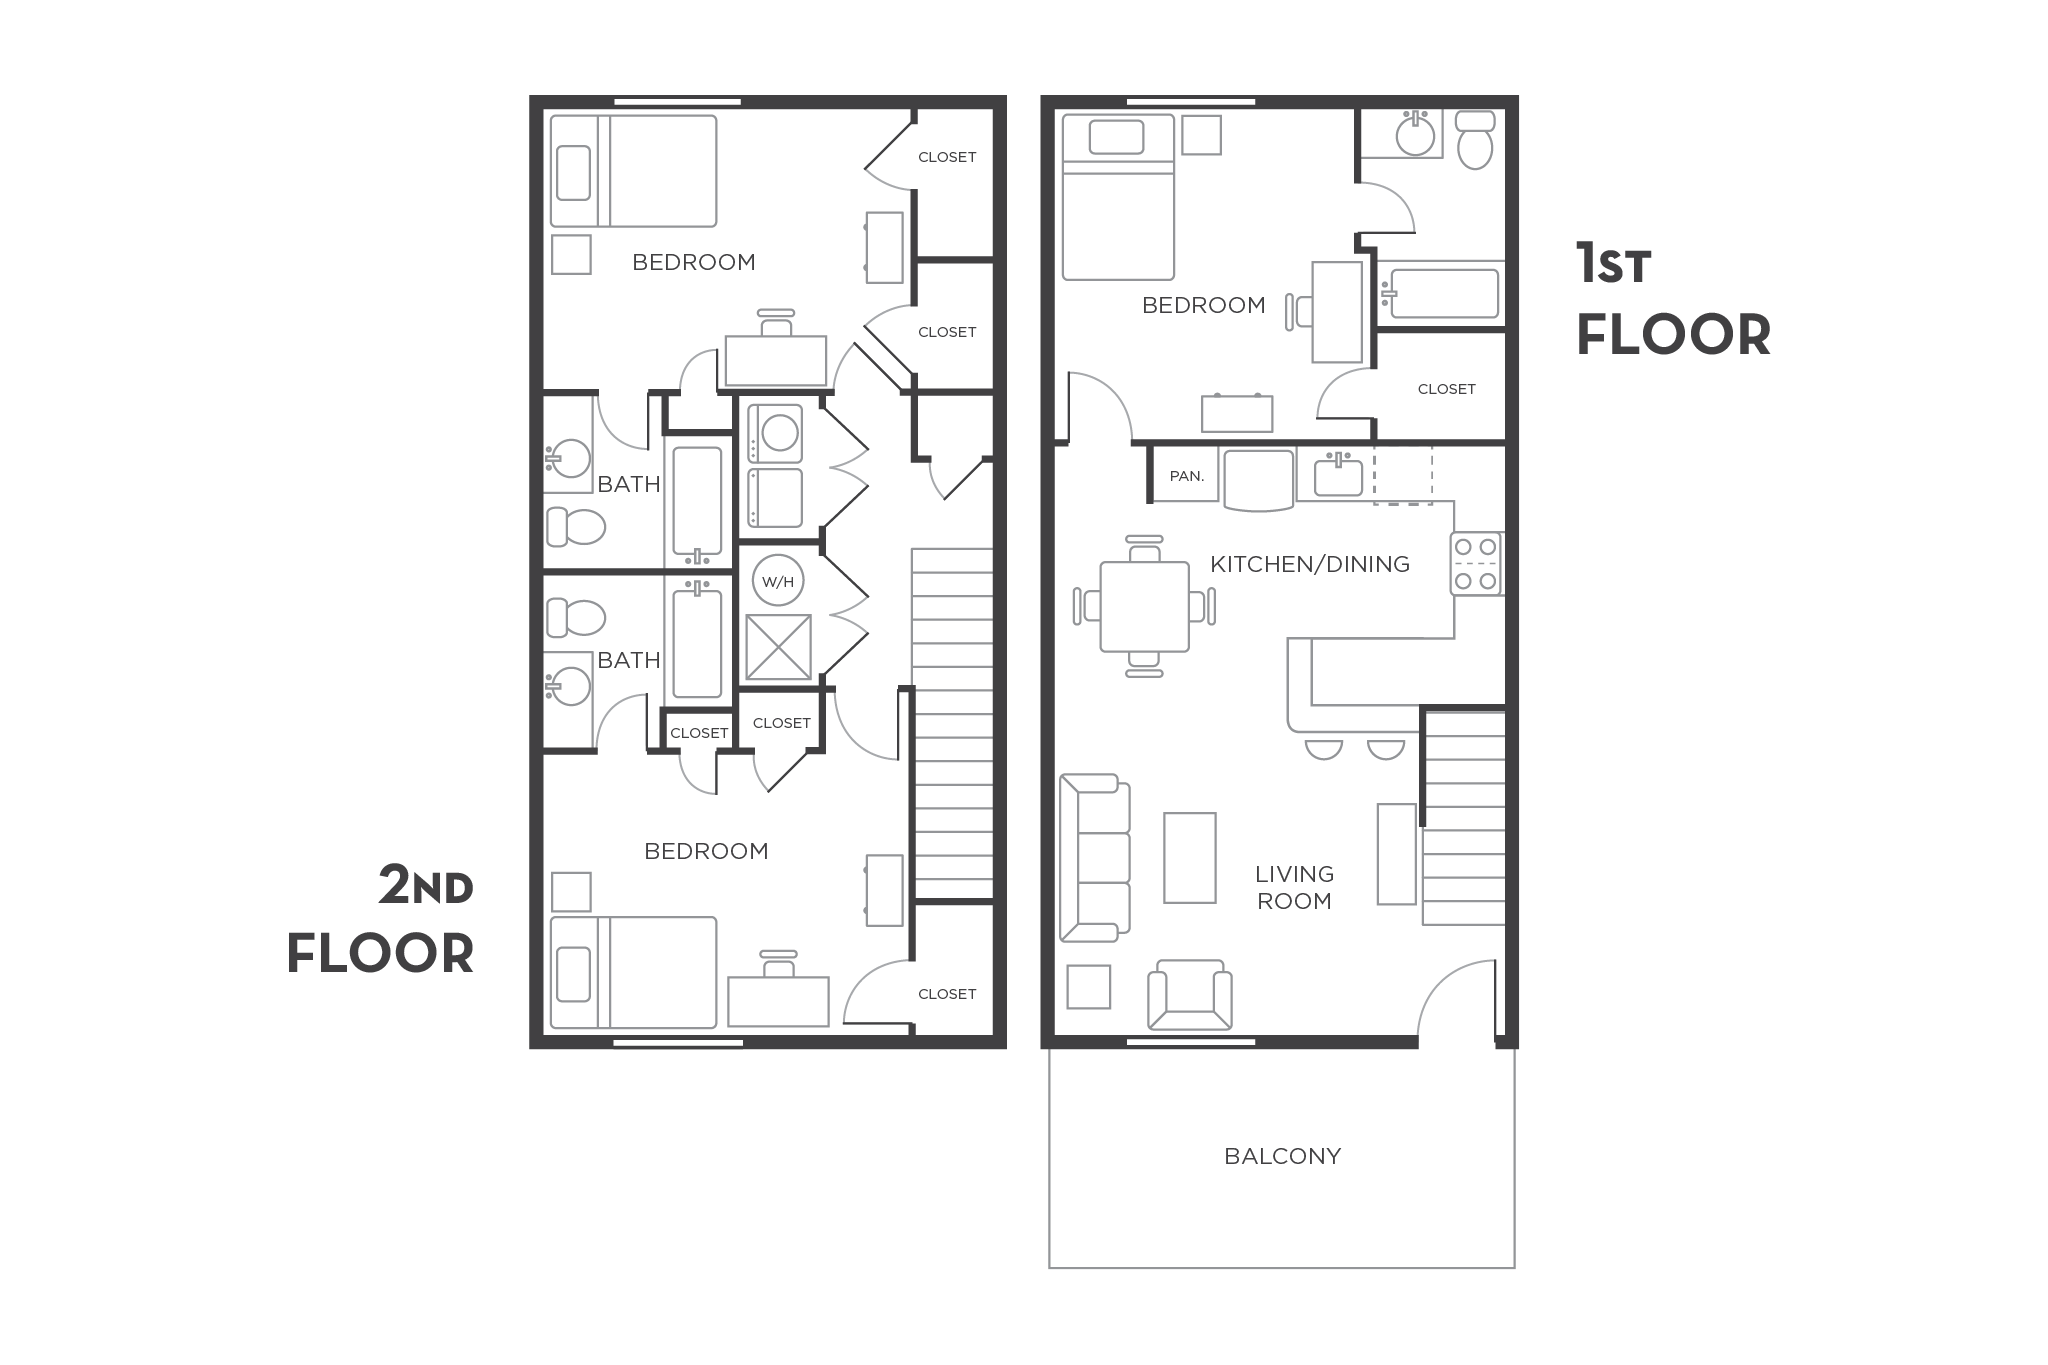 3 Bedroom Apartment Floor Plan - Wildwood Baton Rouge | bed/bath ...